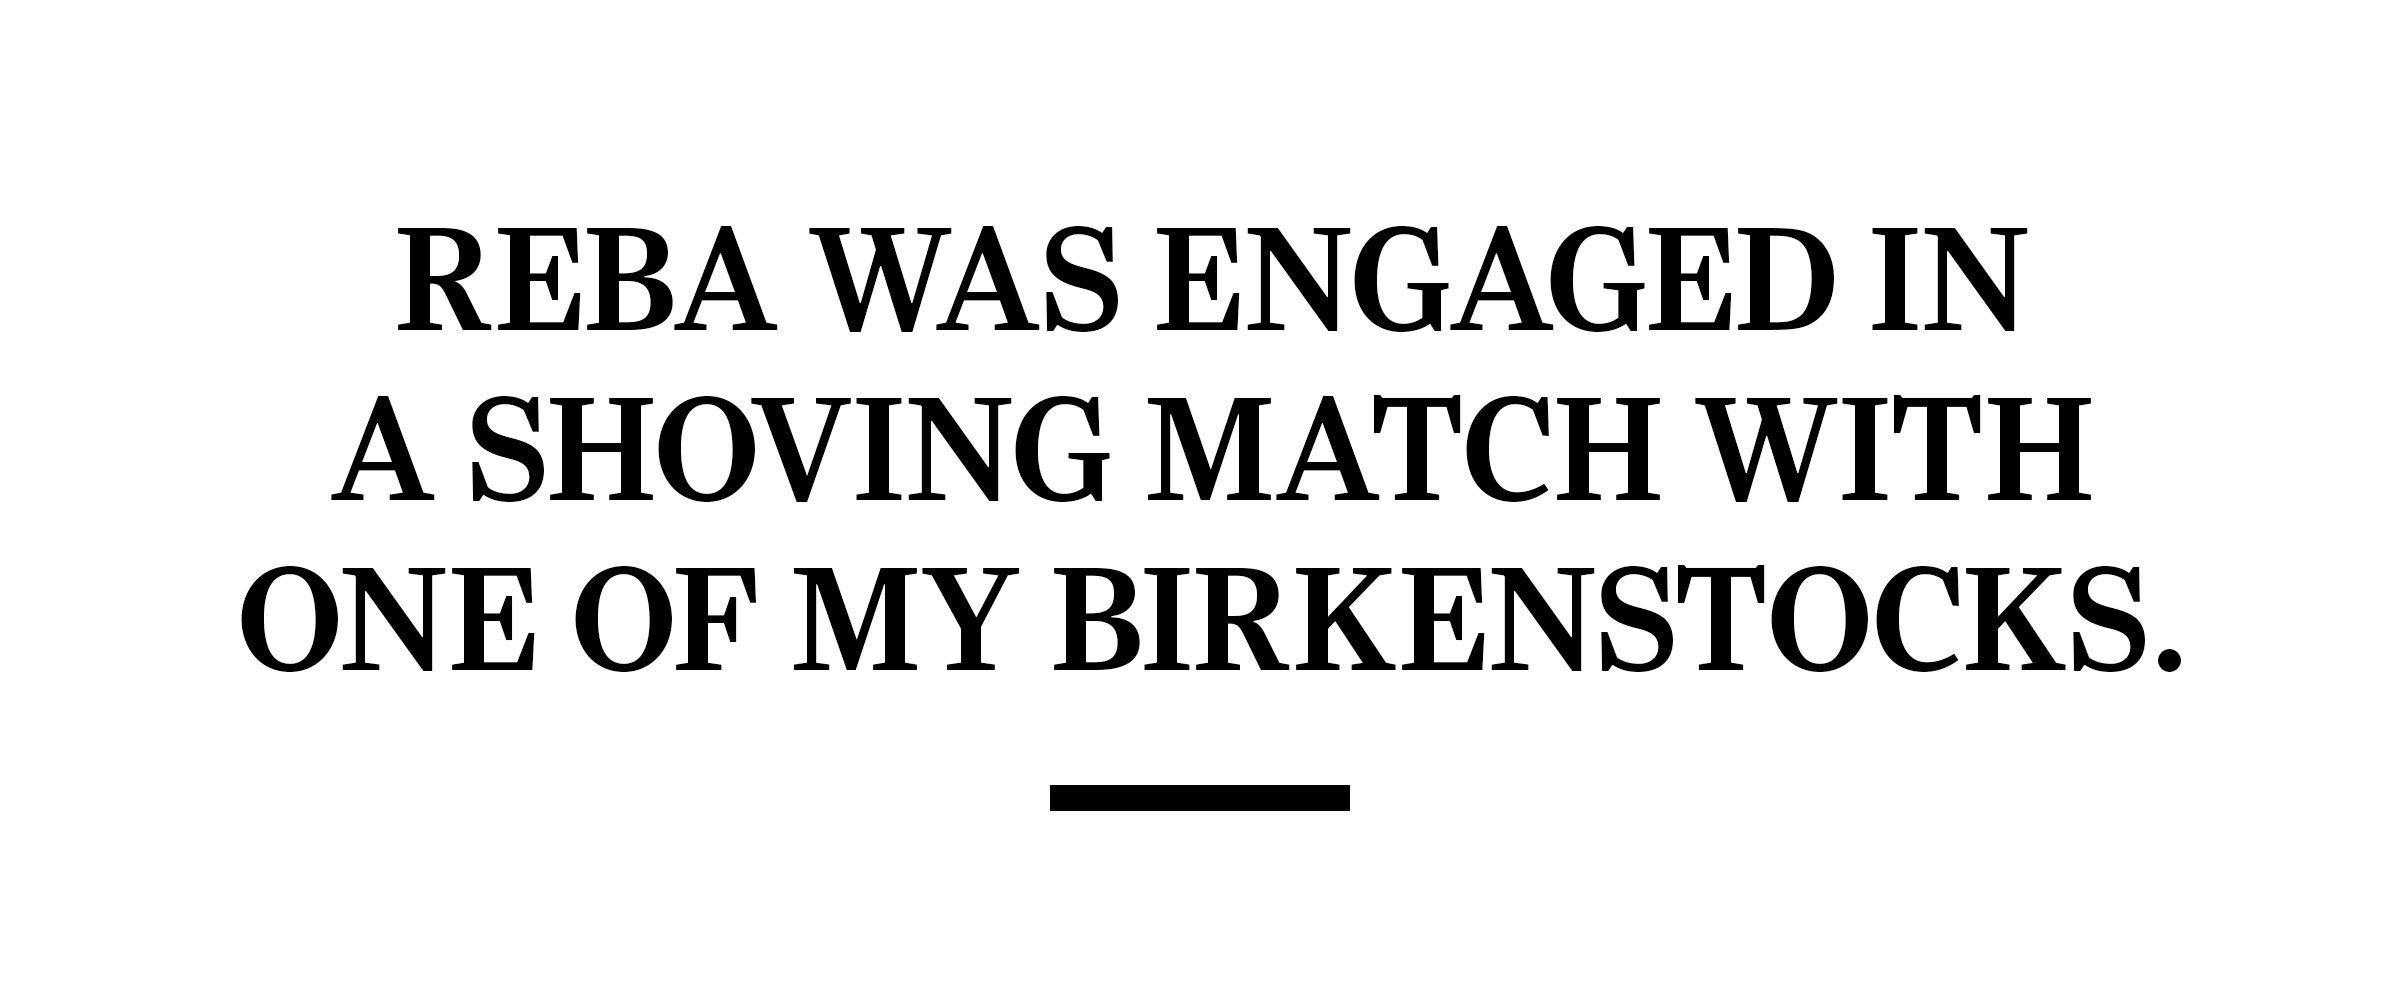 text: Reba was engaged in a shoving match with one of my Birkenstocks.